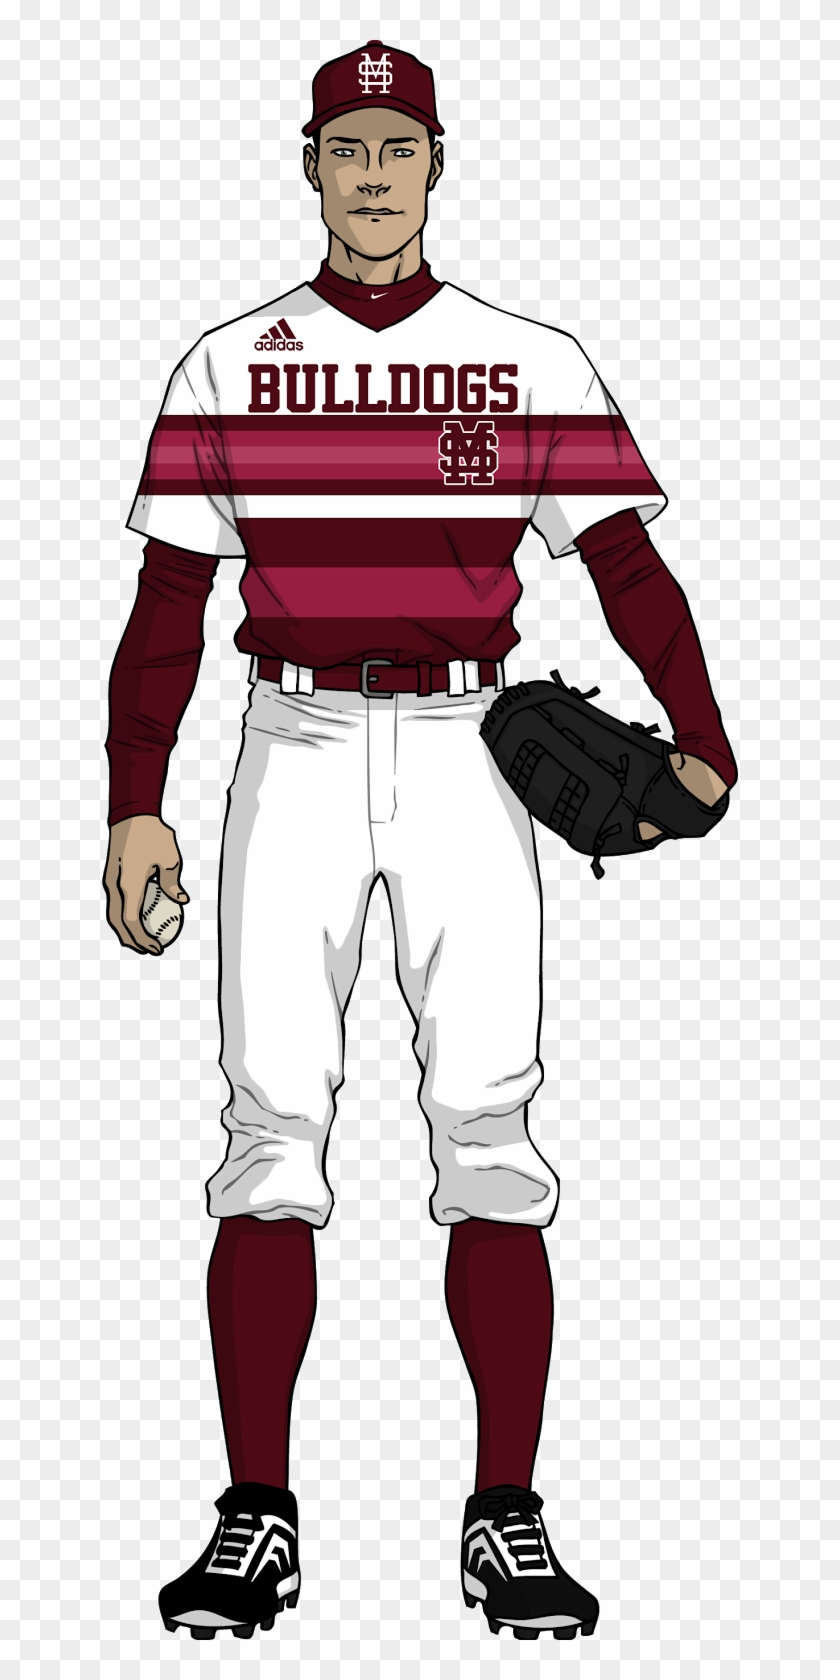 The Bulldogs Currently Have Four Hats - Mississippi State Baseball Uniforms #304637